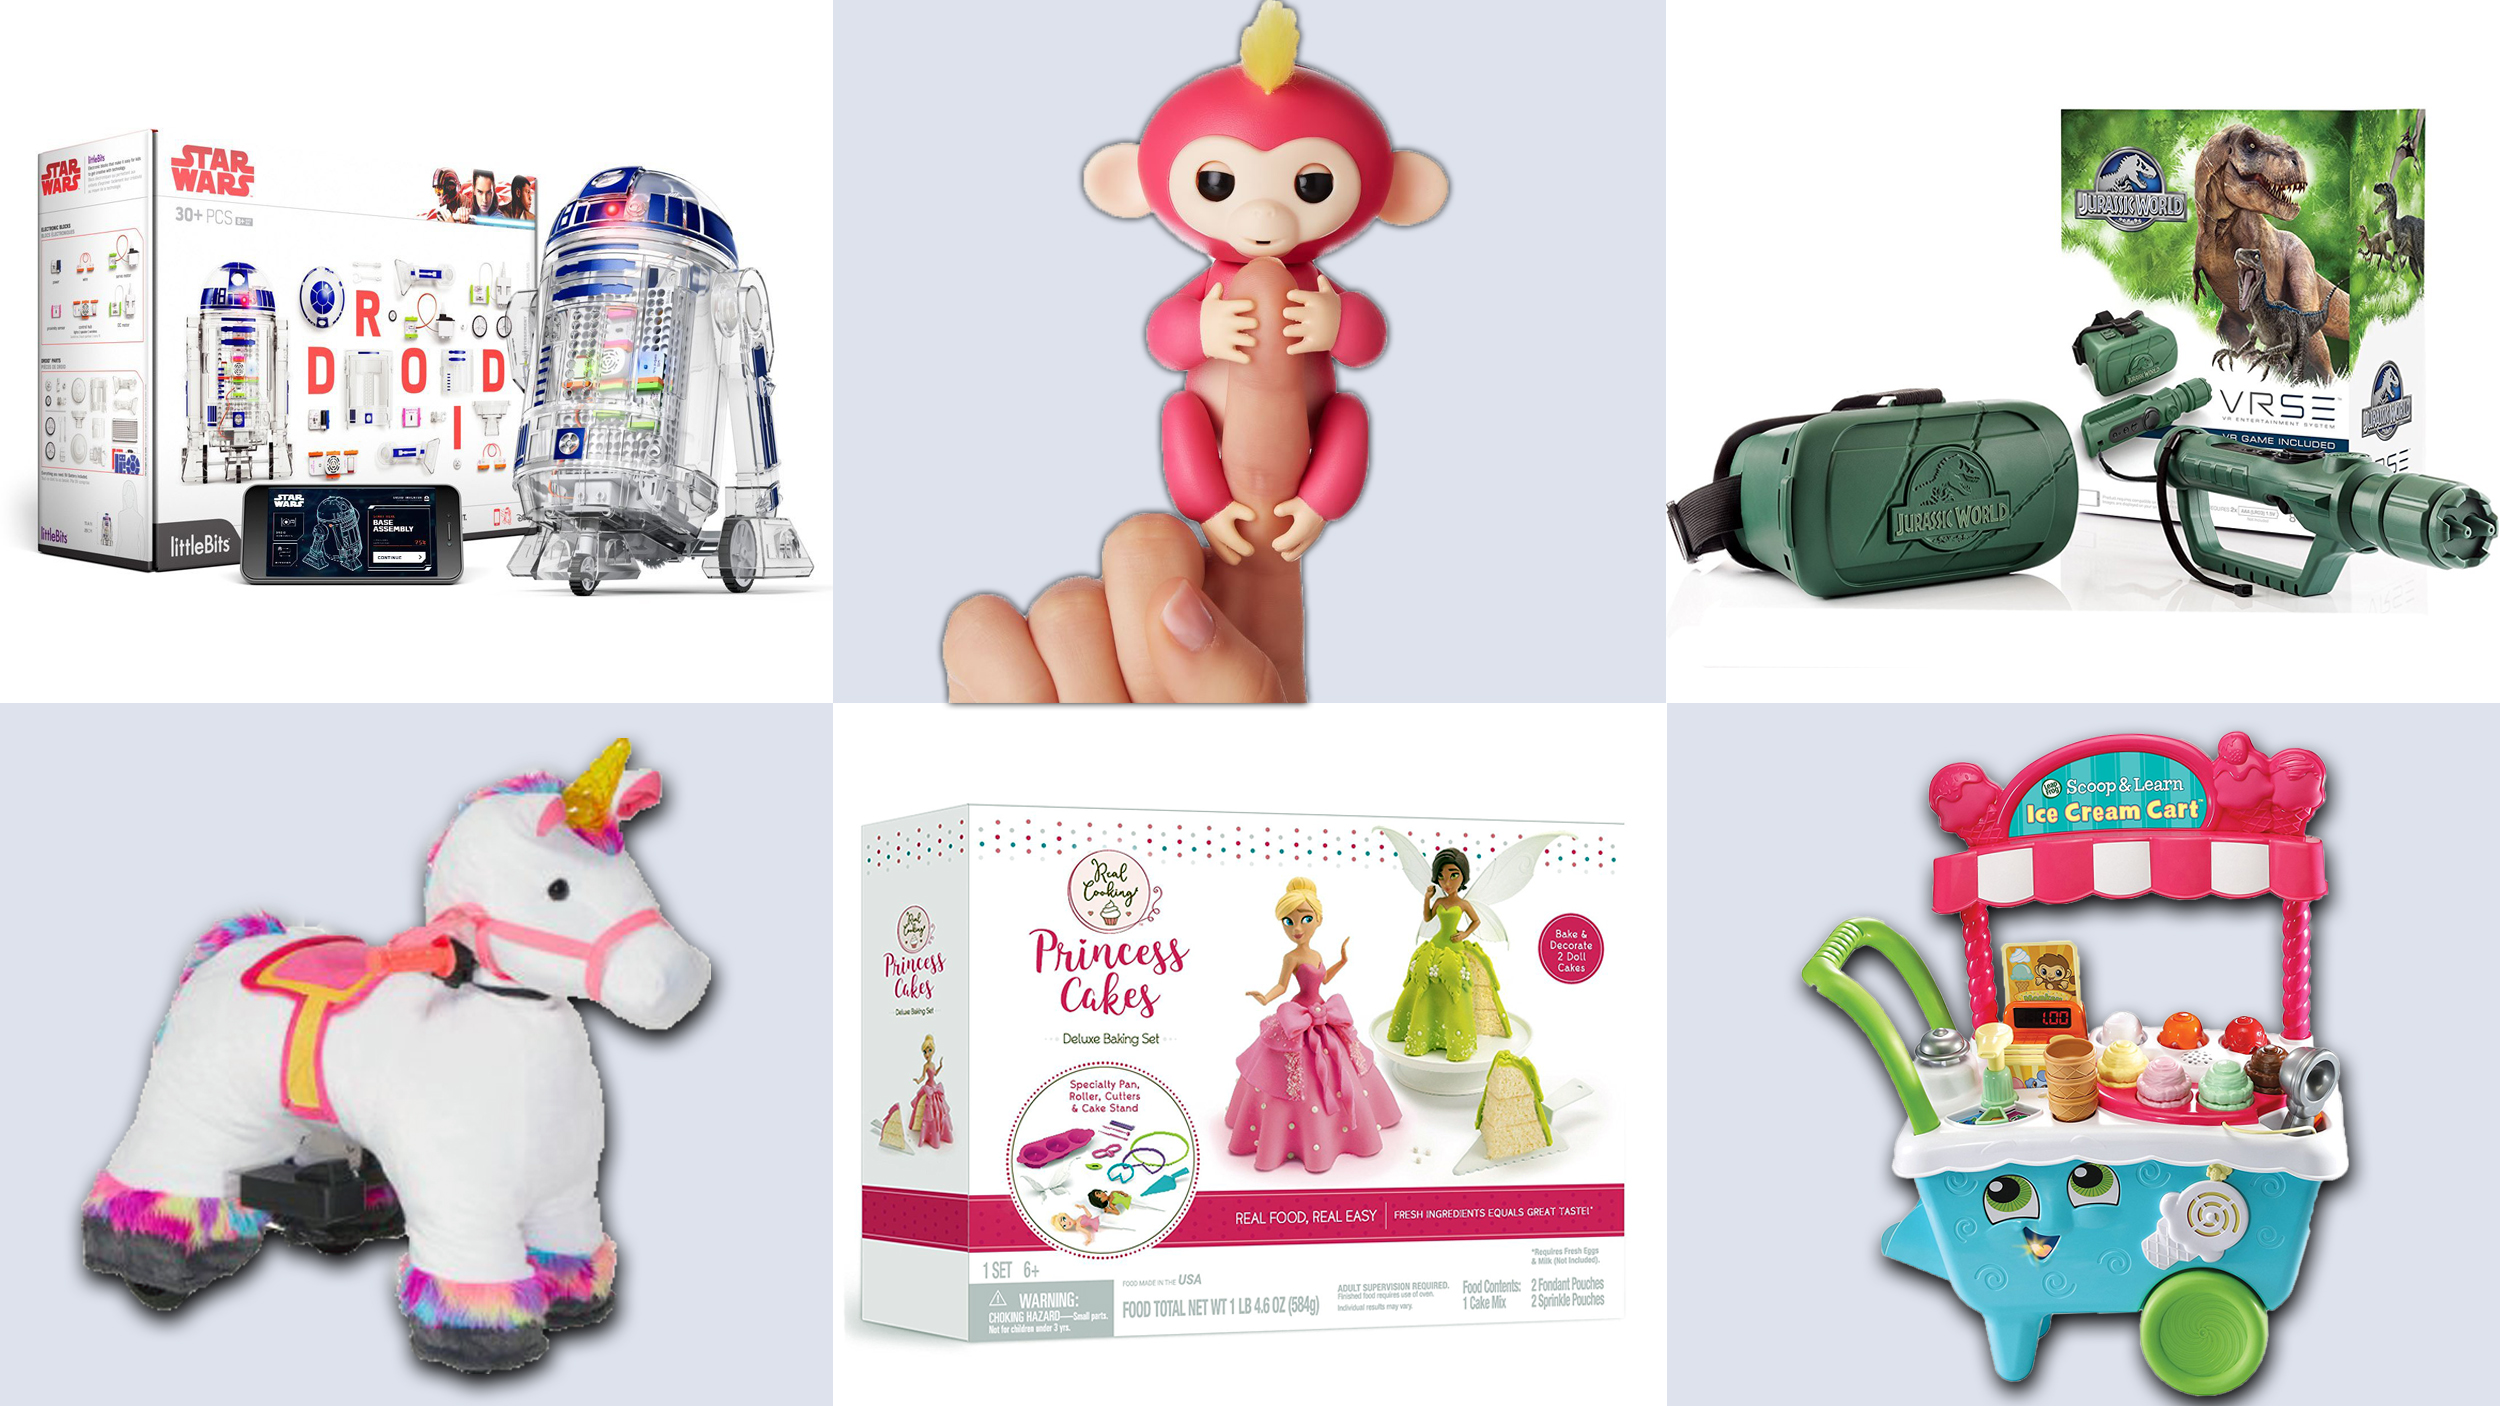 Hottest holiday toys for 2017 Fingerlings Droid inventor VRSE